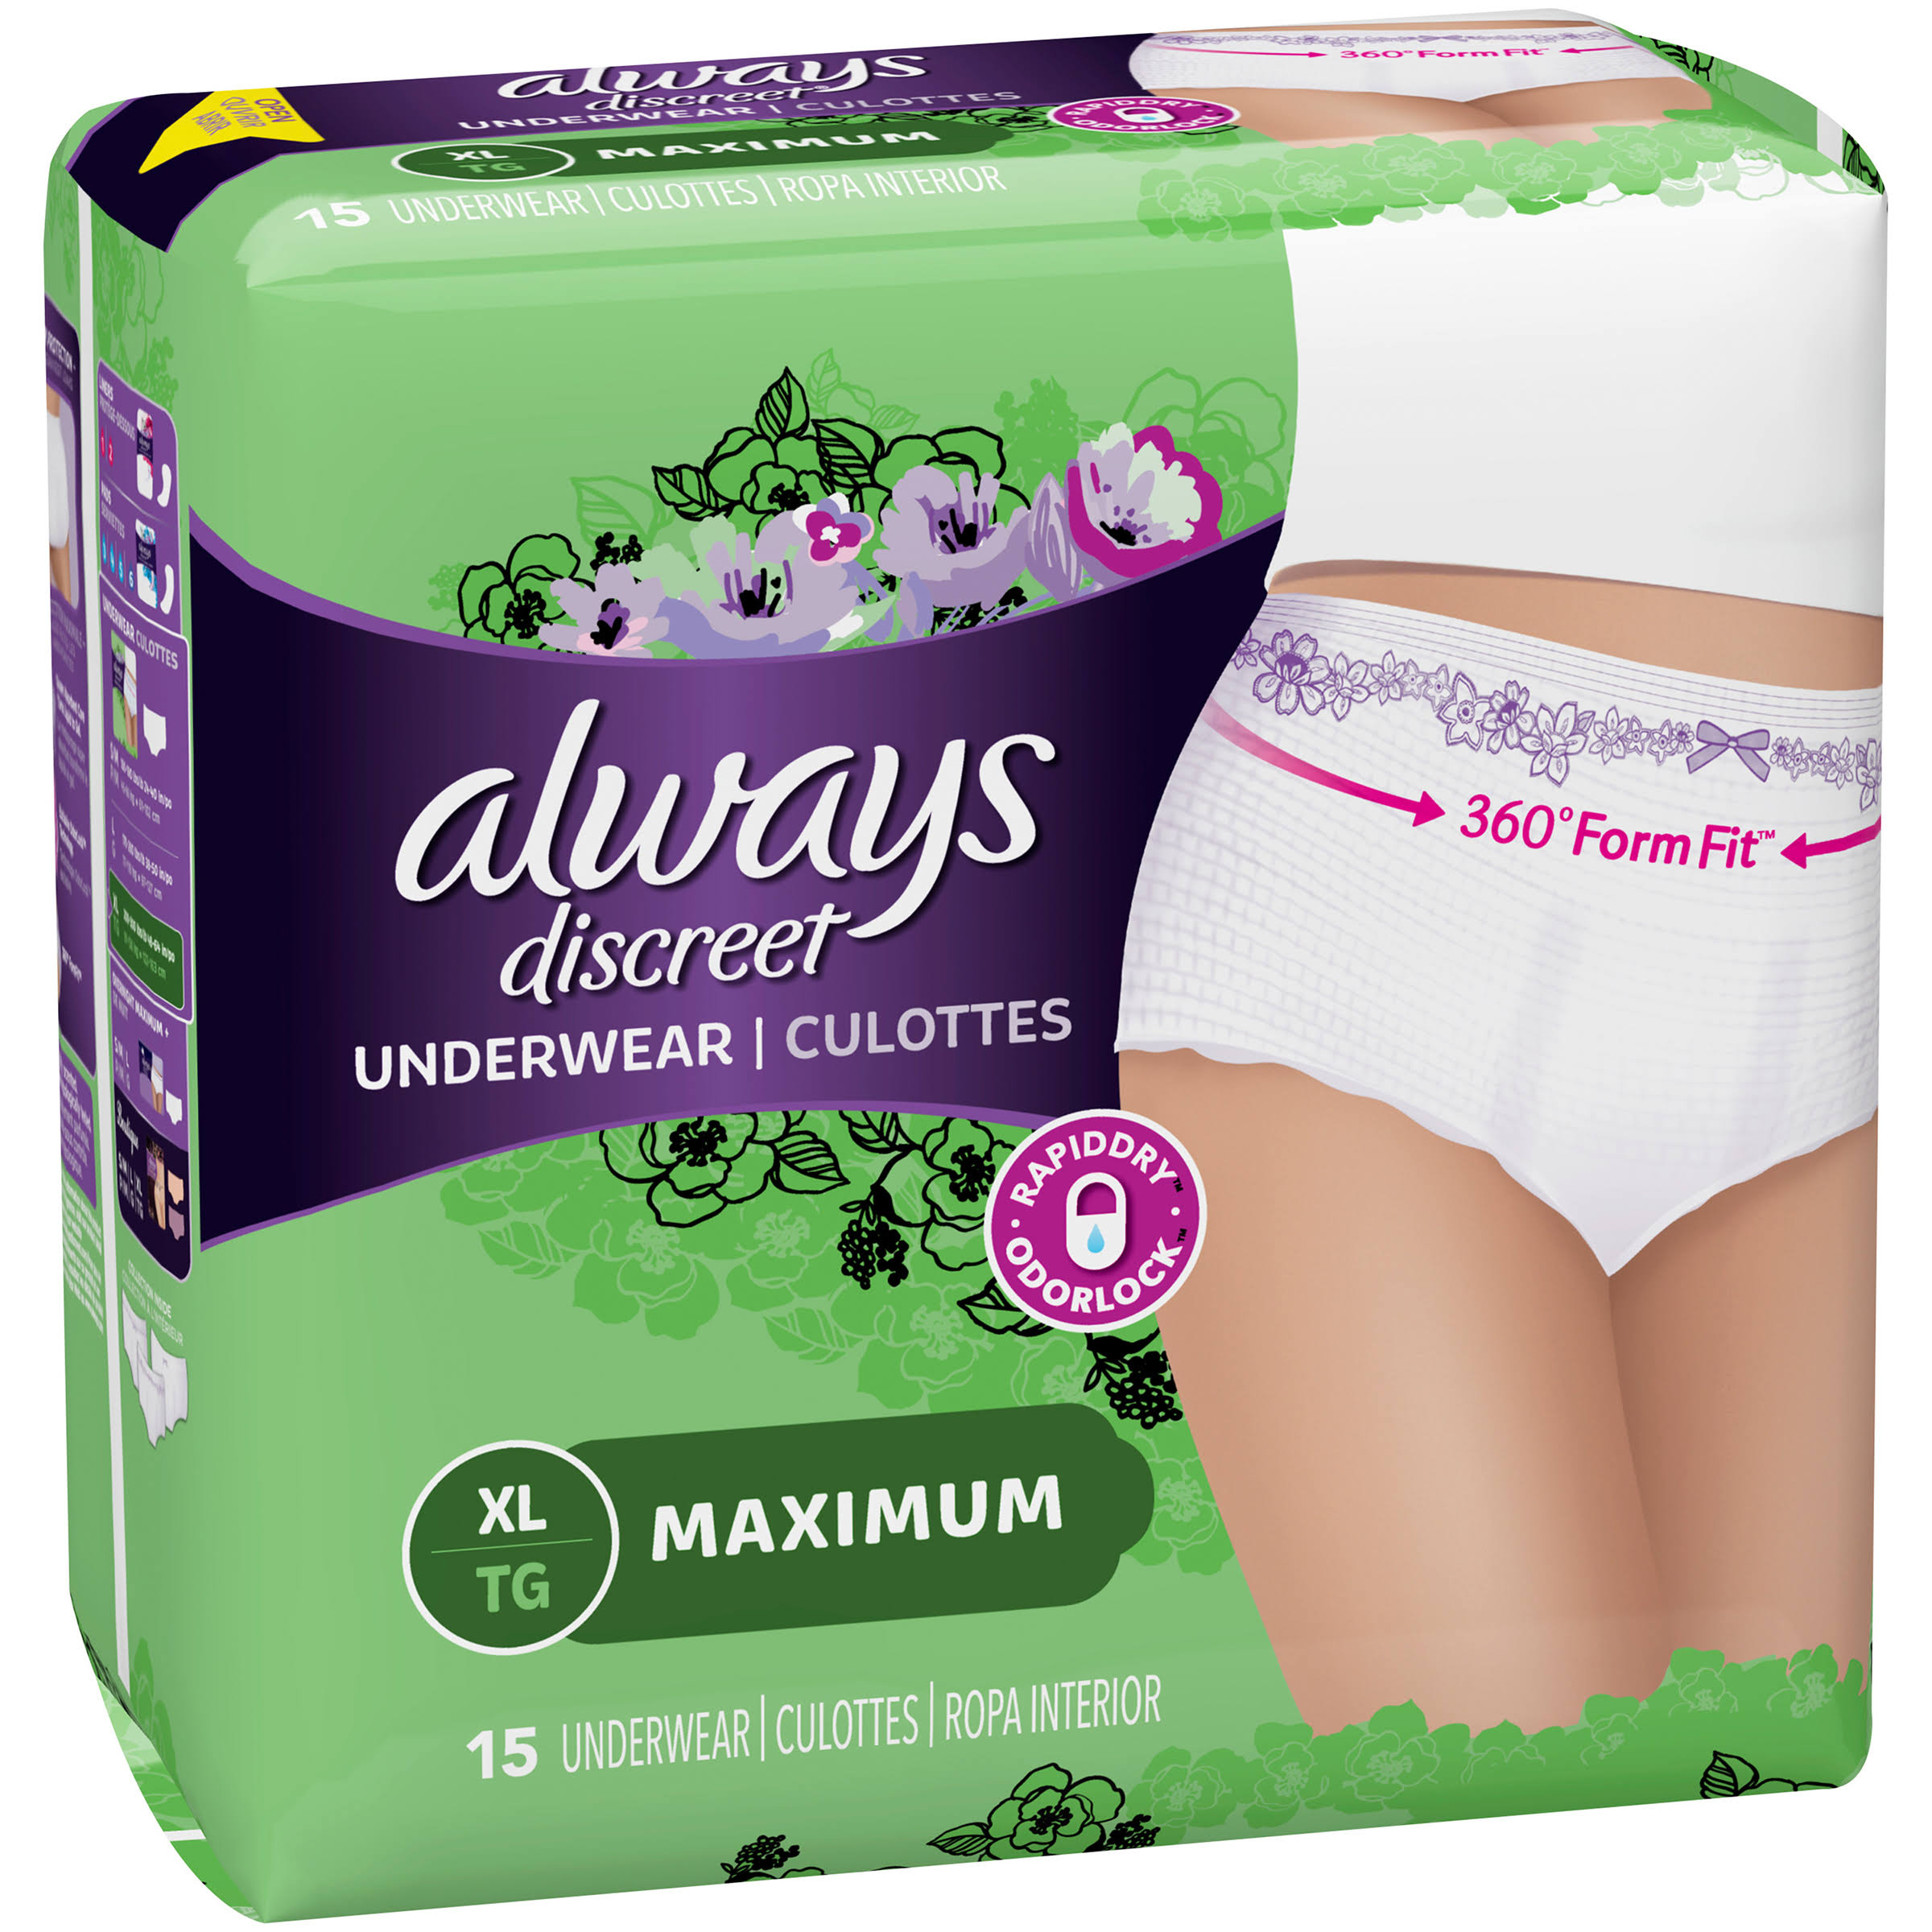 Always Discreet Maximum Classic Cut Underwear - XLarge, 200-300lbs, 15pk